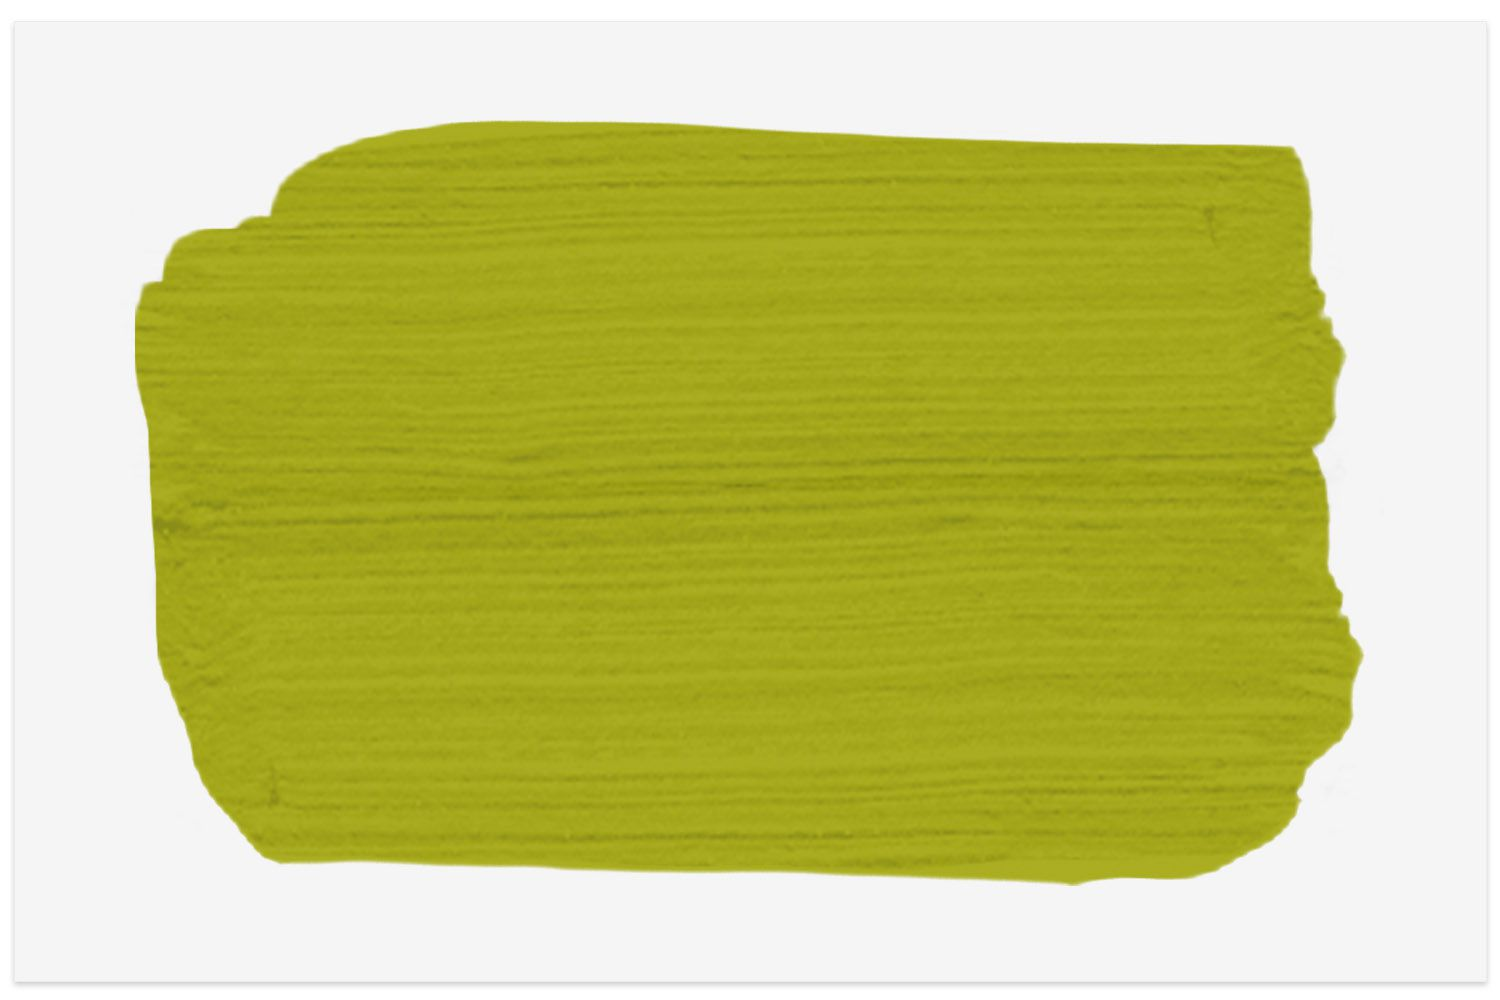 Willow Herb paint swatch from PPG Paints